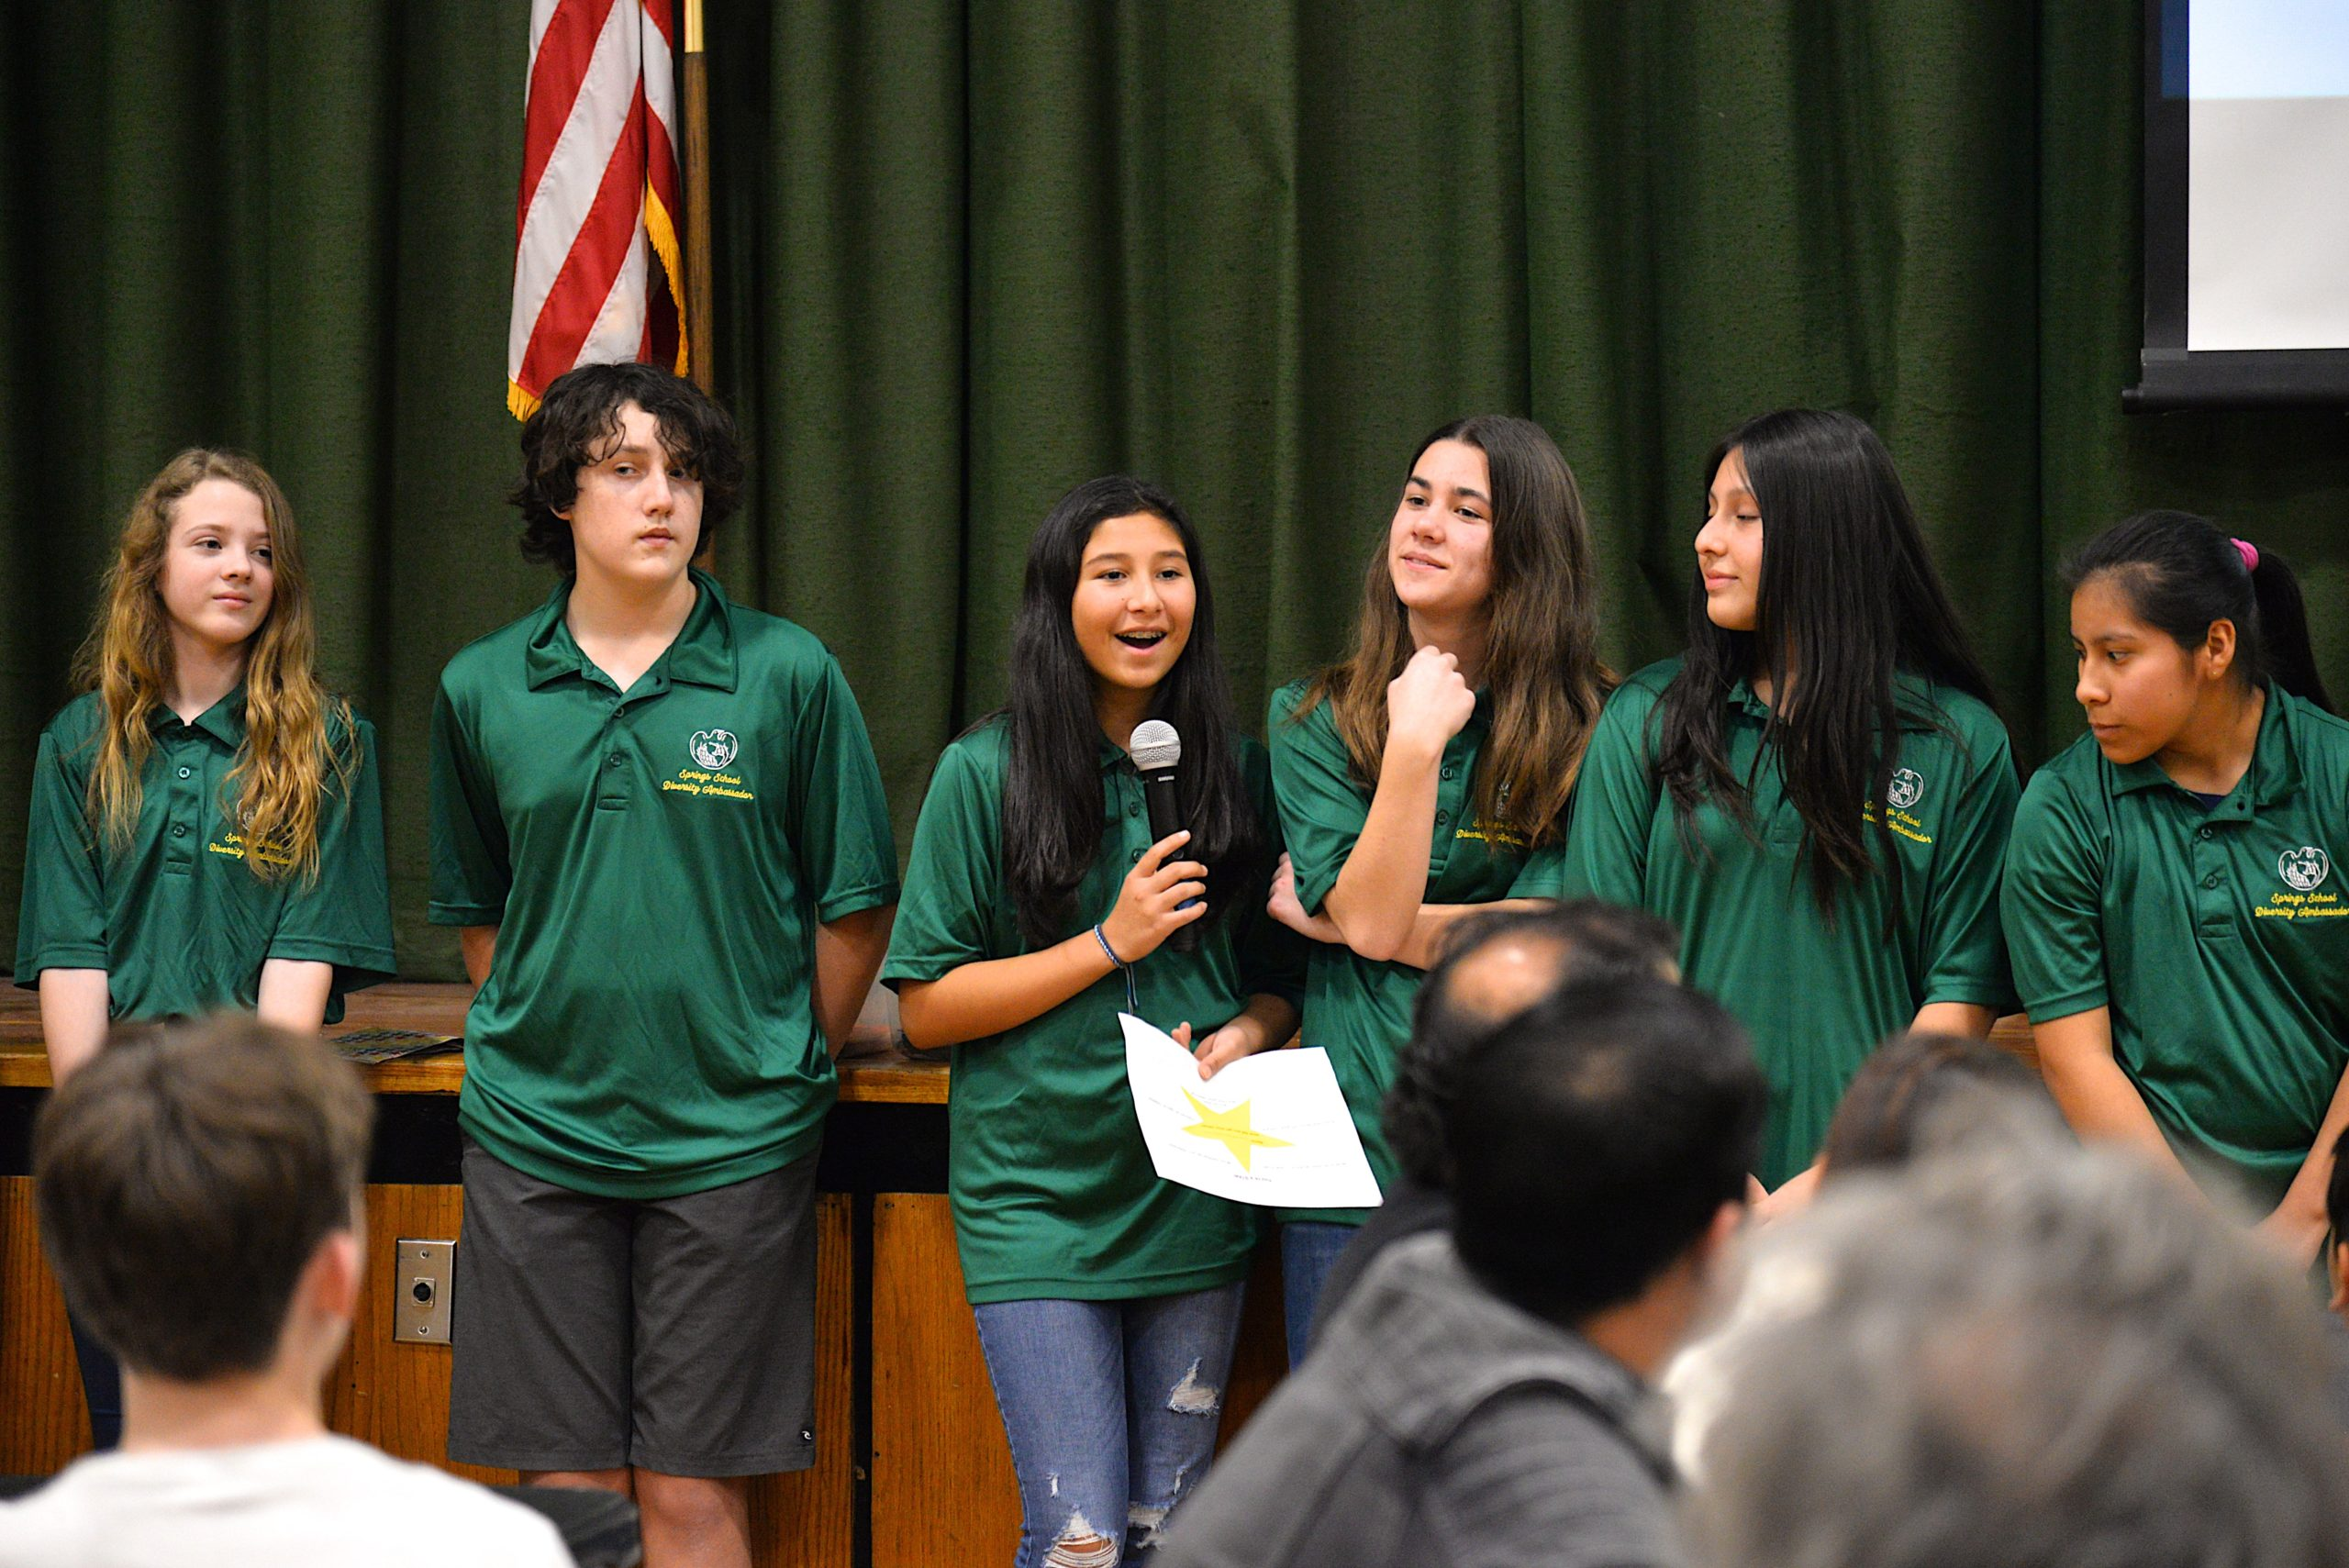 Springs School students led the Diversity Institute program at the school on Friday. KYRIL BROMLEY